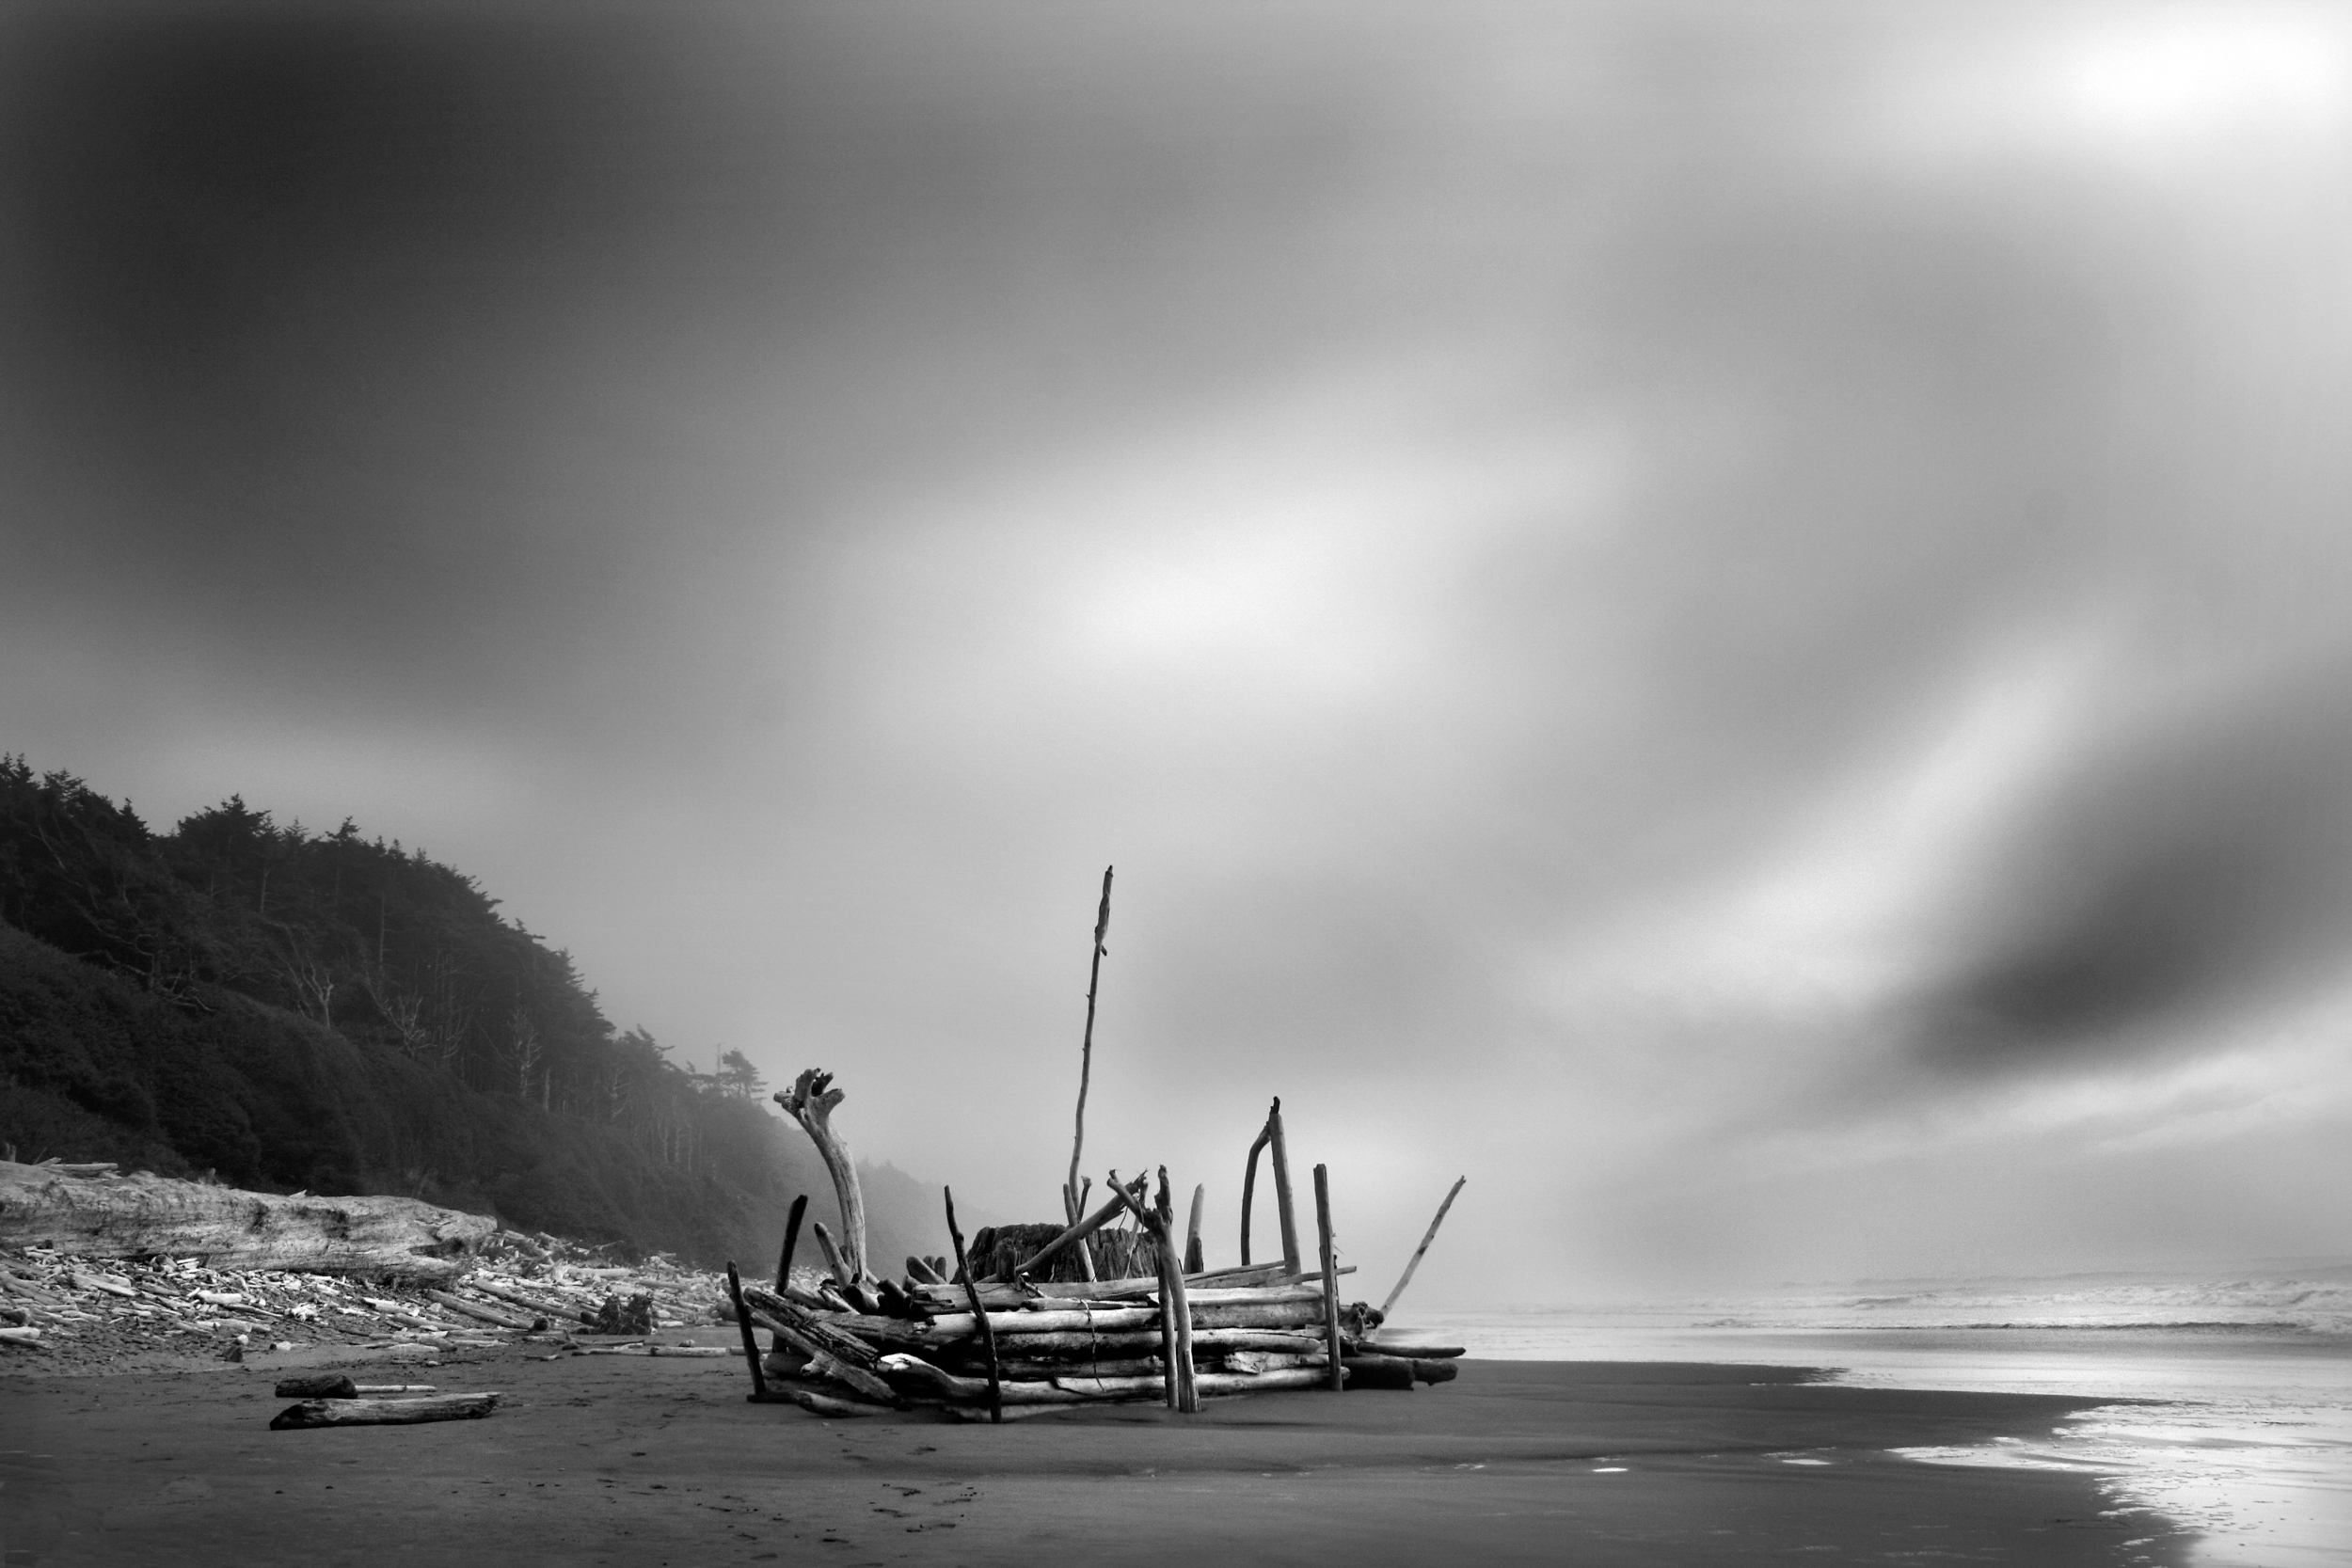 Paul Craig Interior Photographer Personal Work Driftwood on beach